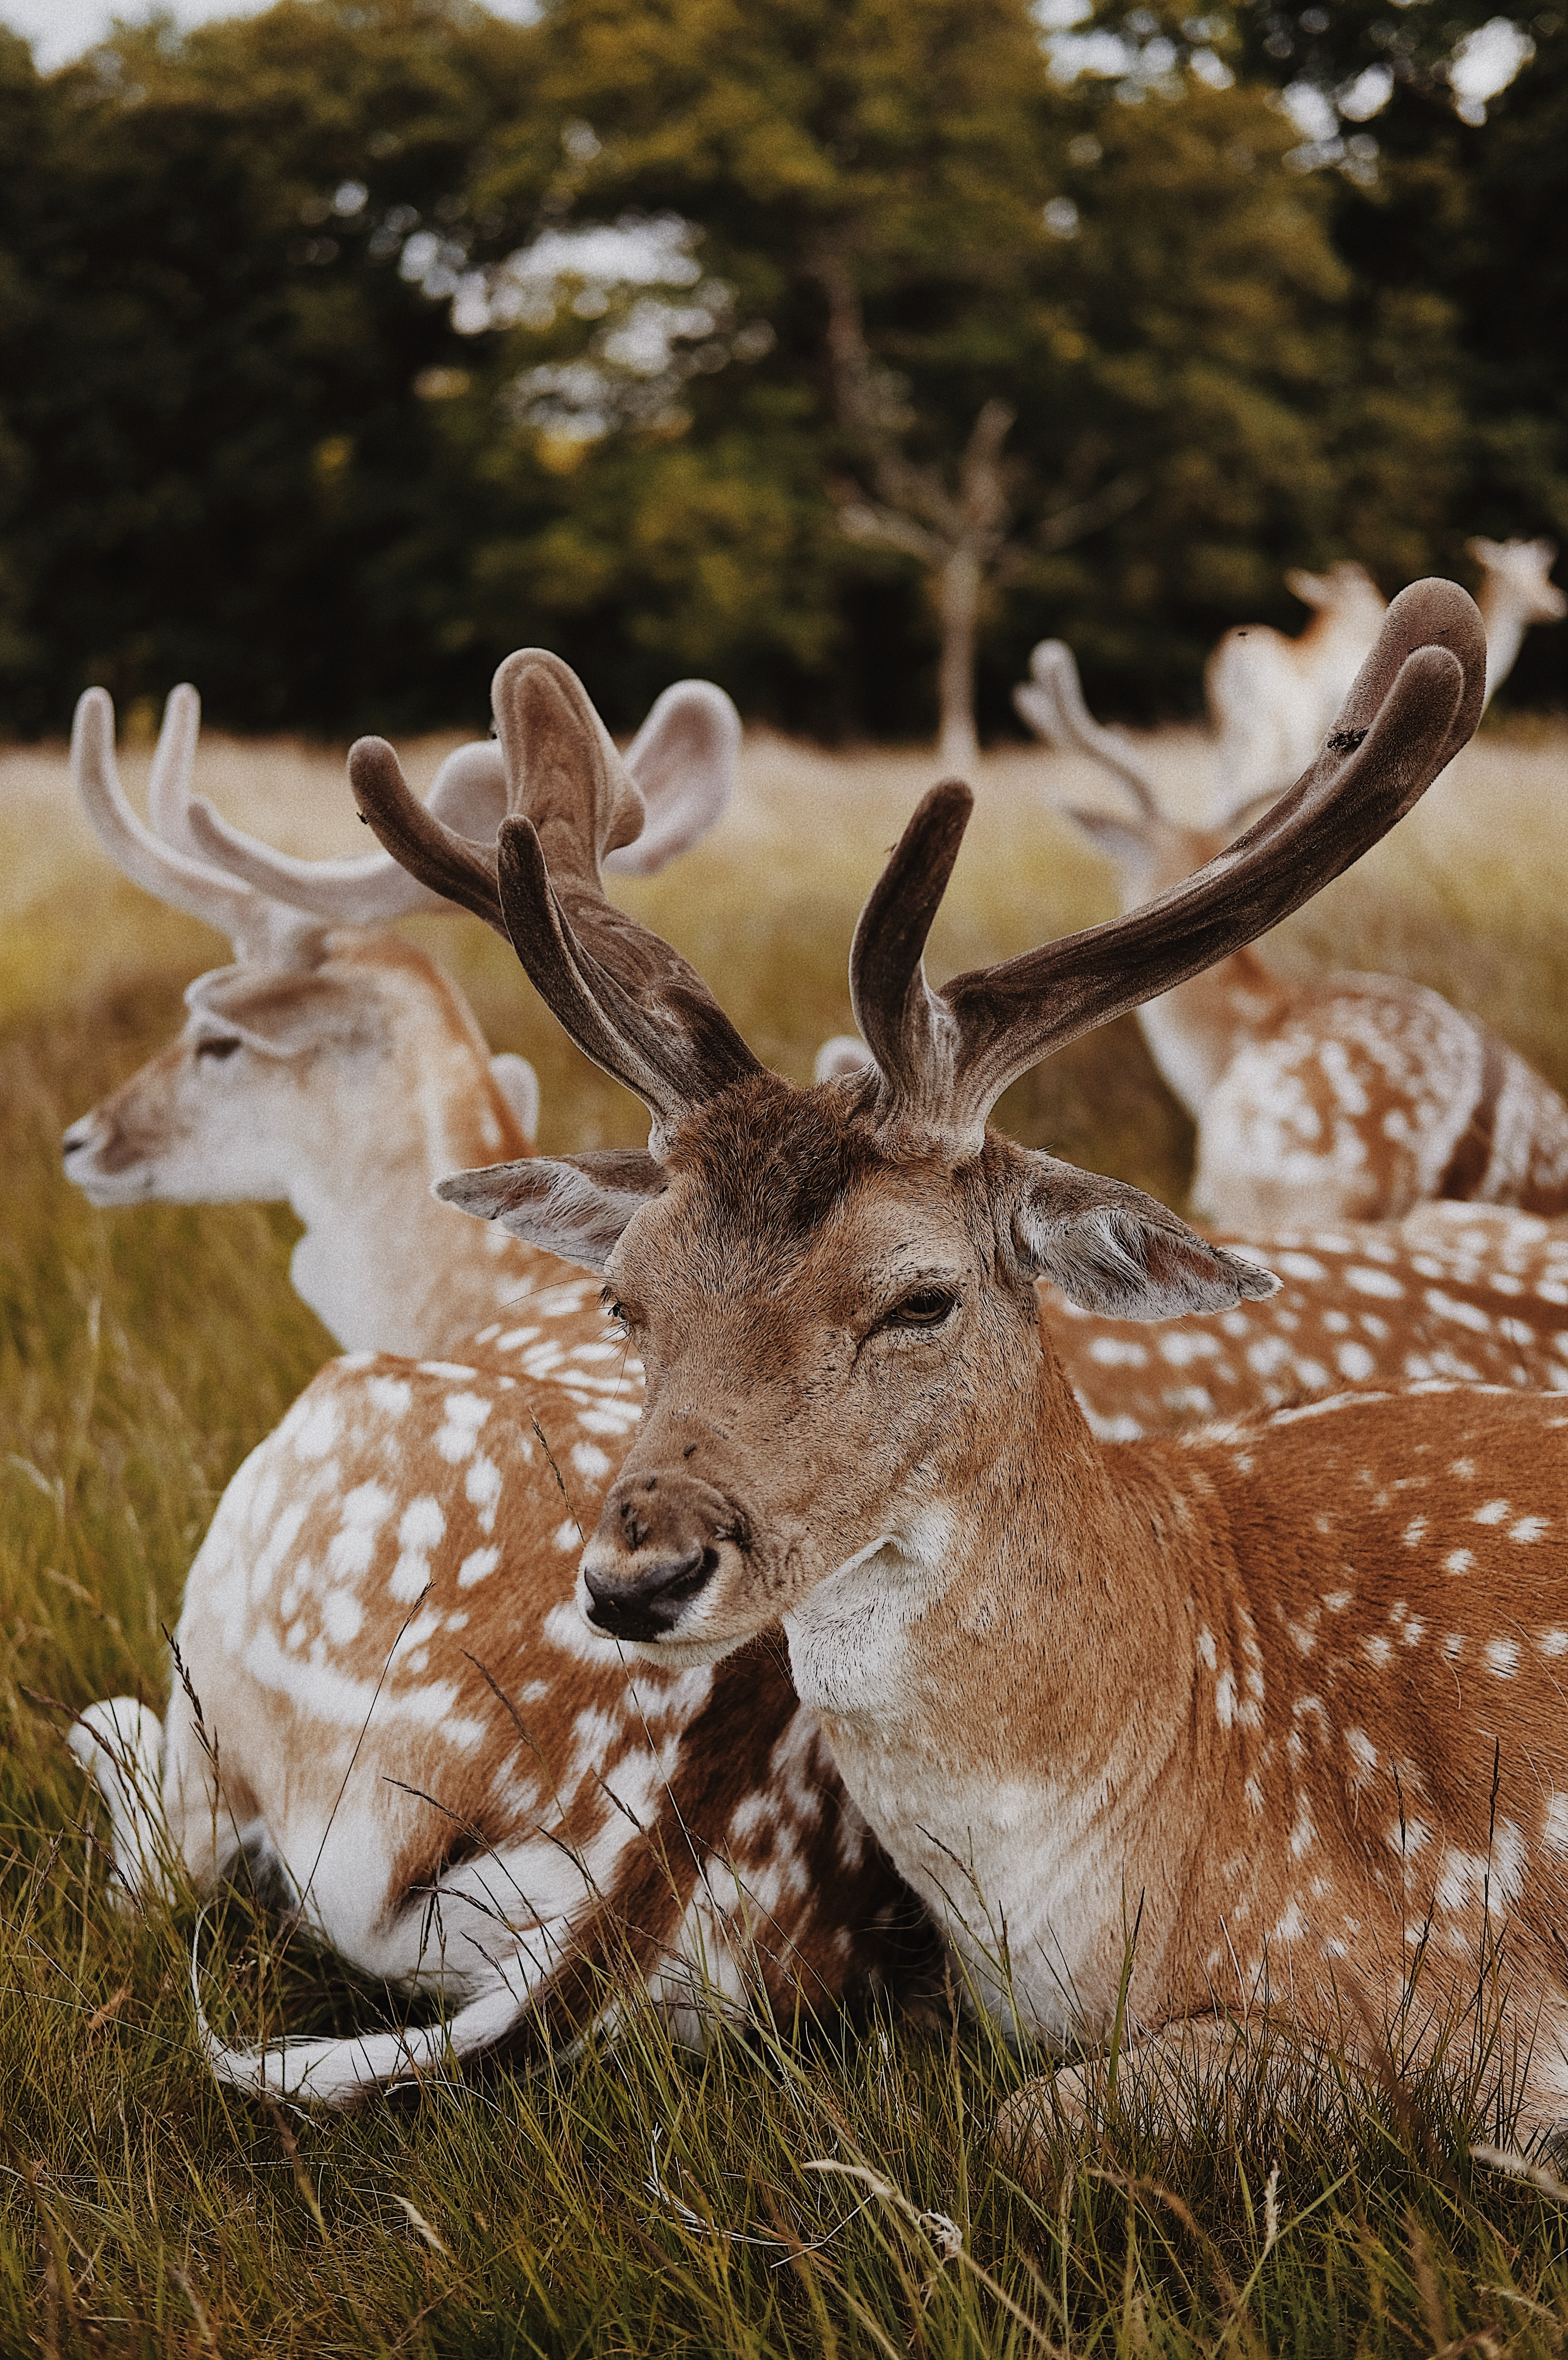 Close-up of a herd of deers sitting close to each other in grass